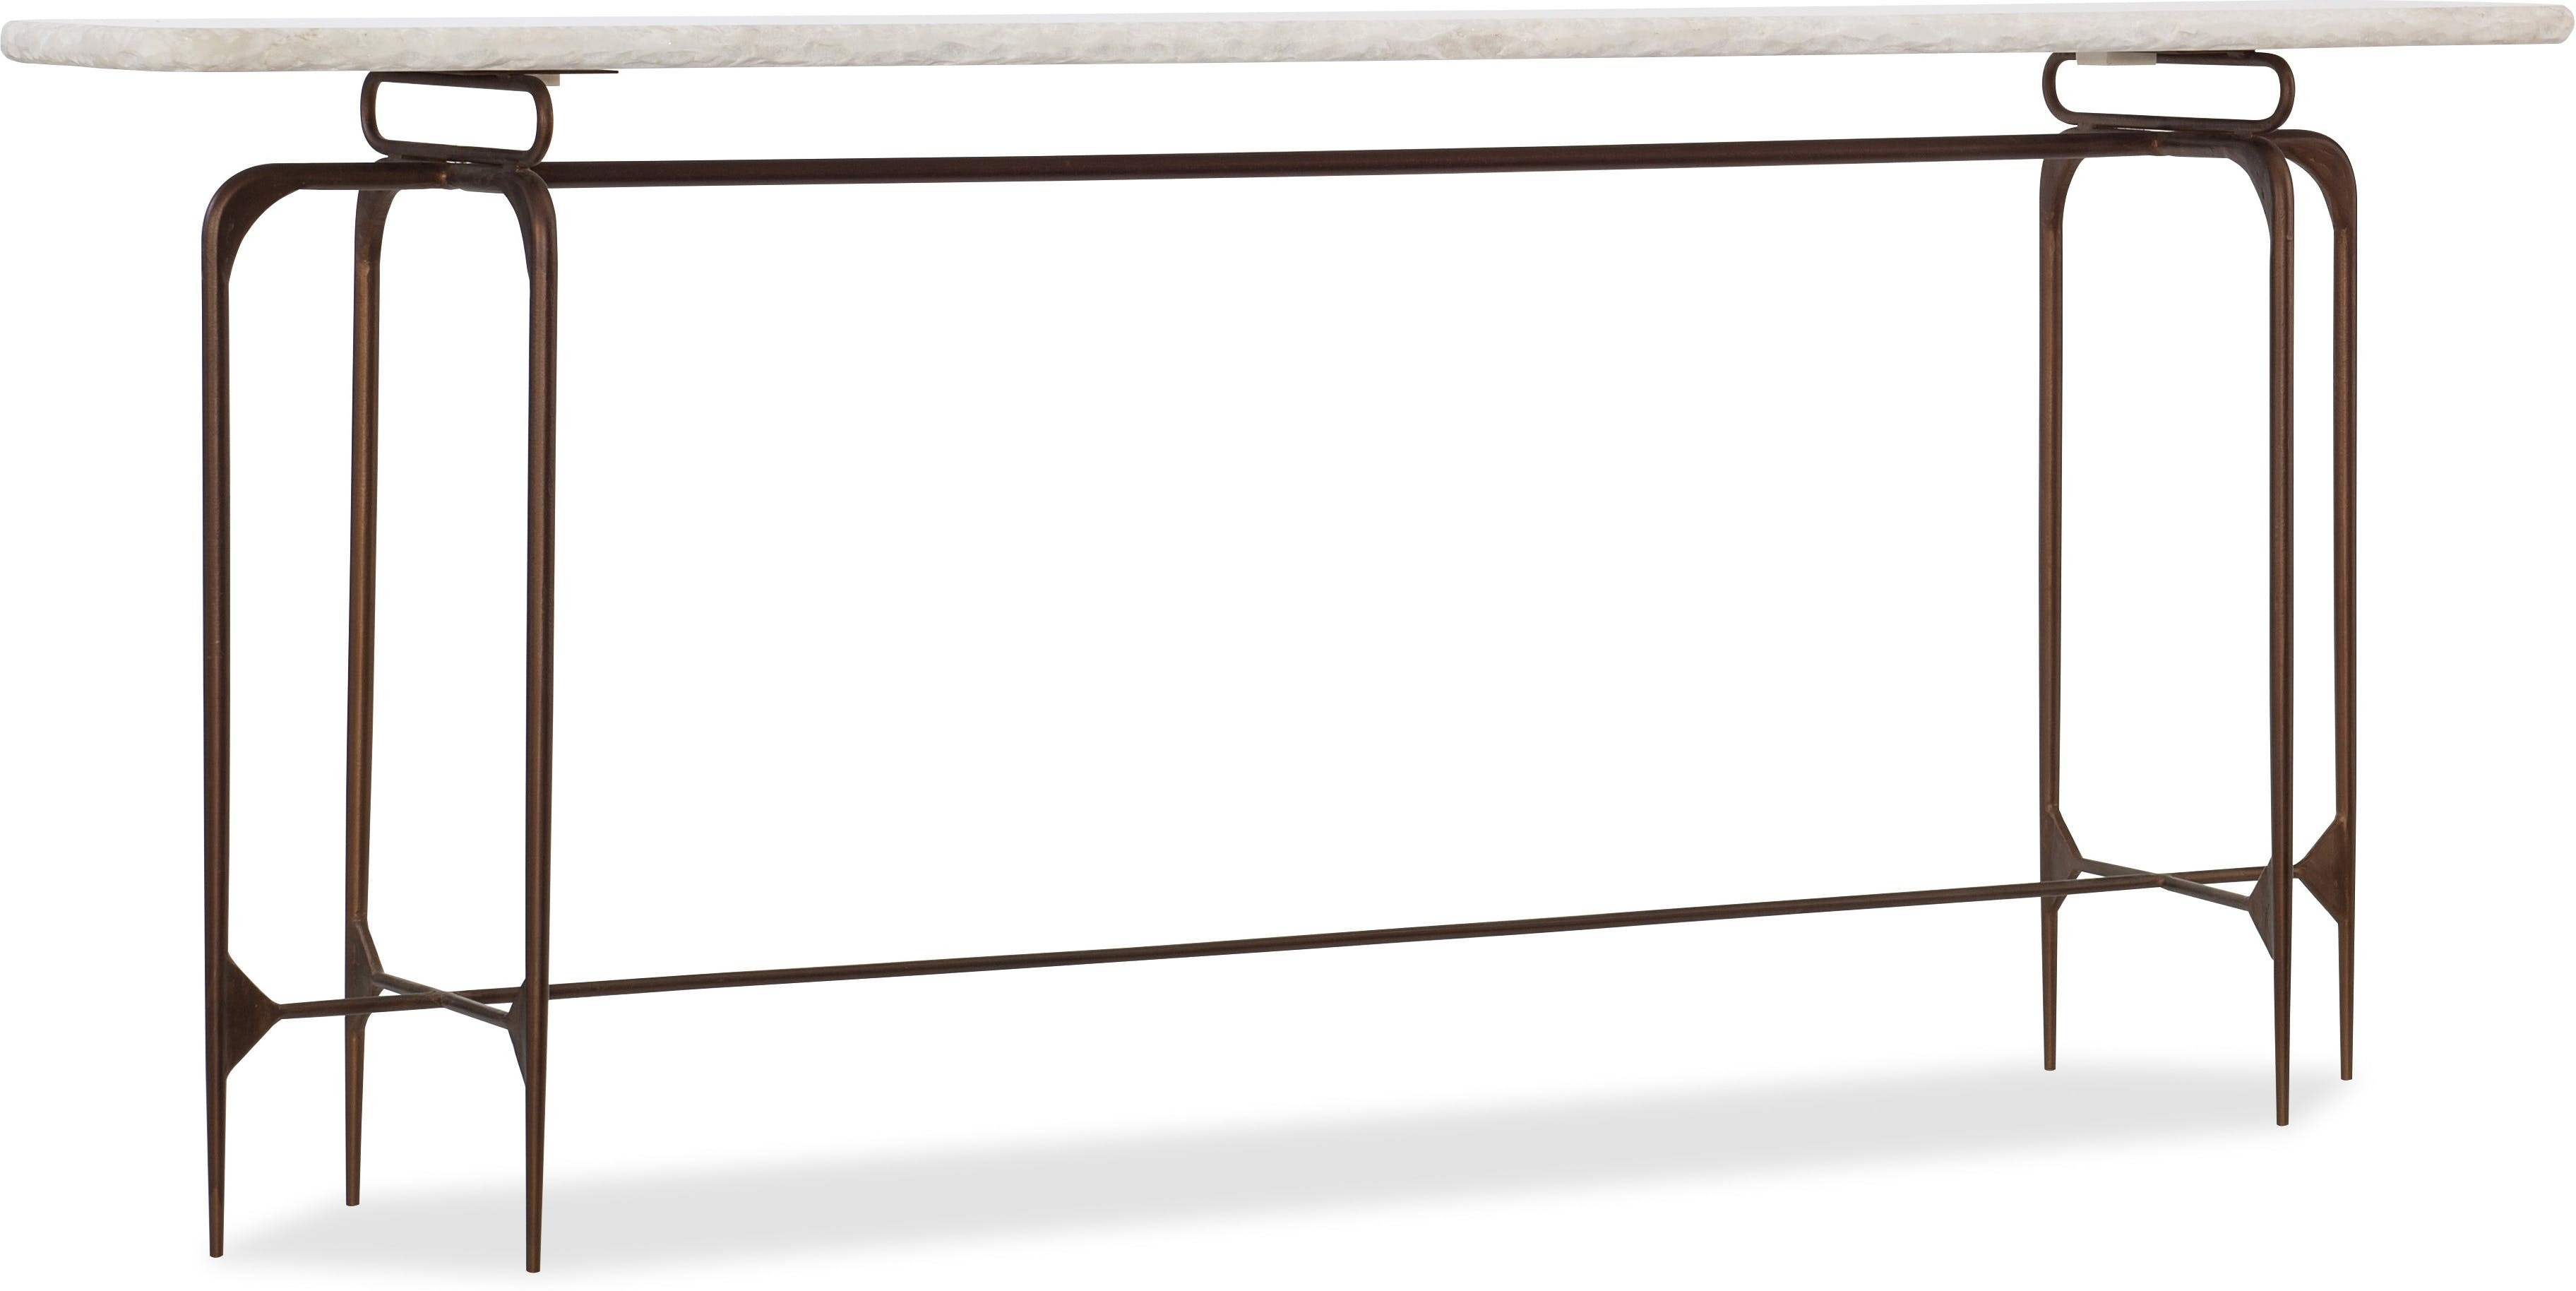 Skinny Metal Console | SHOP NOW